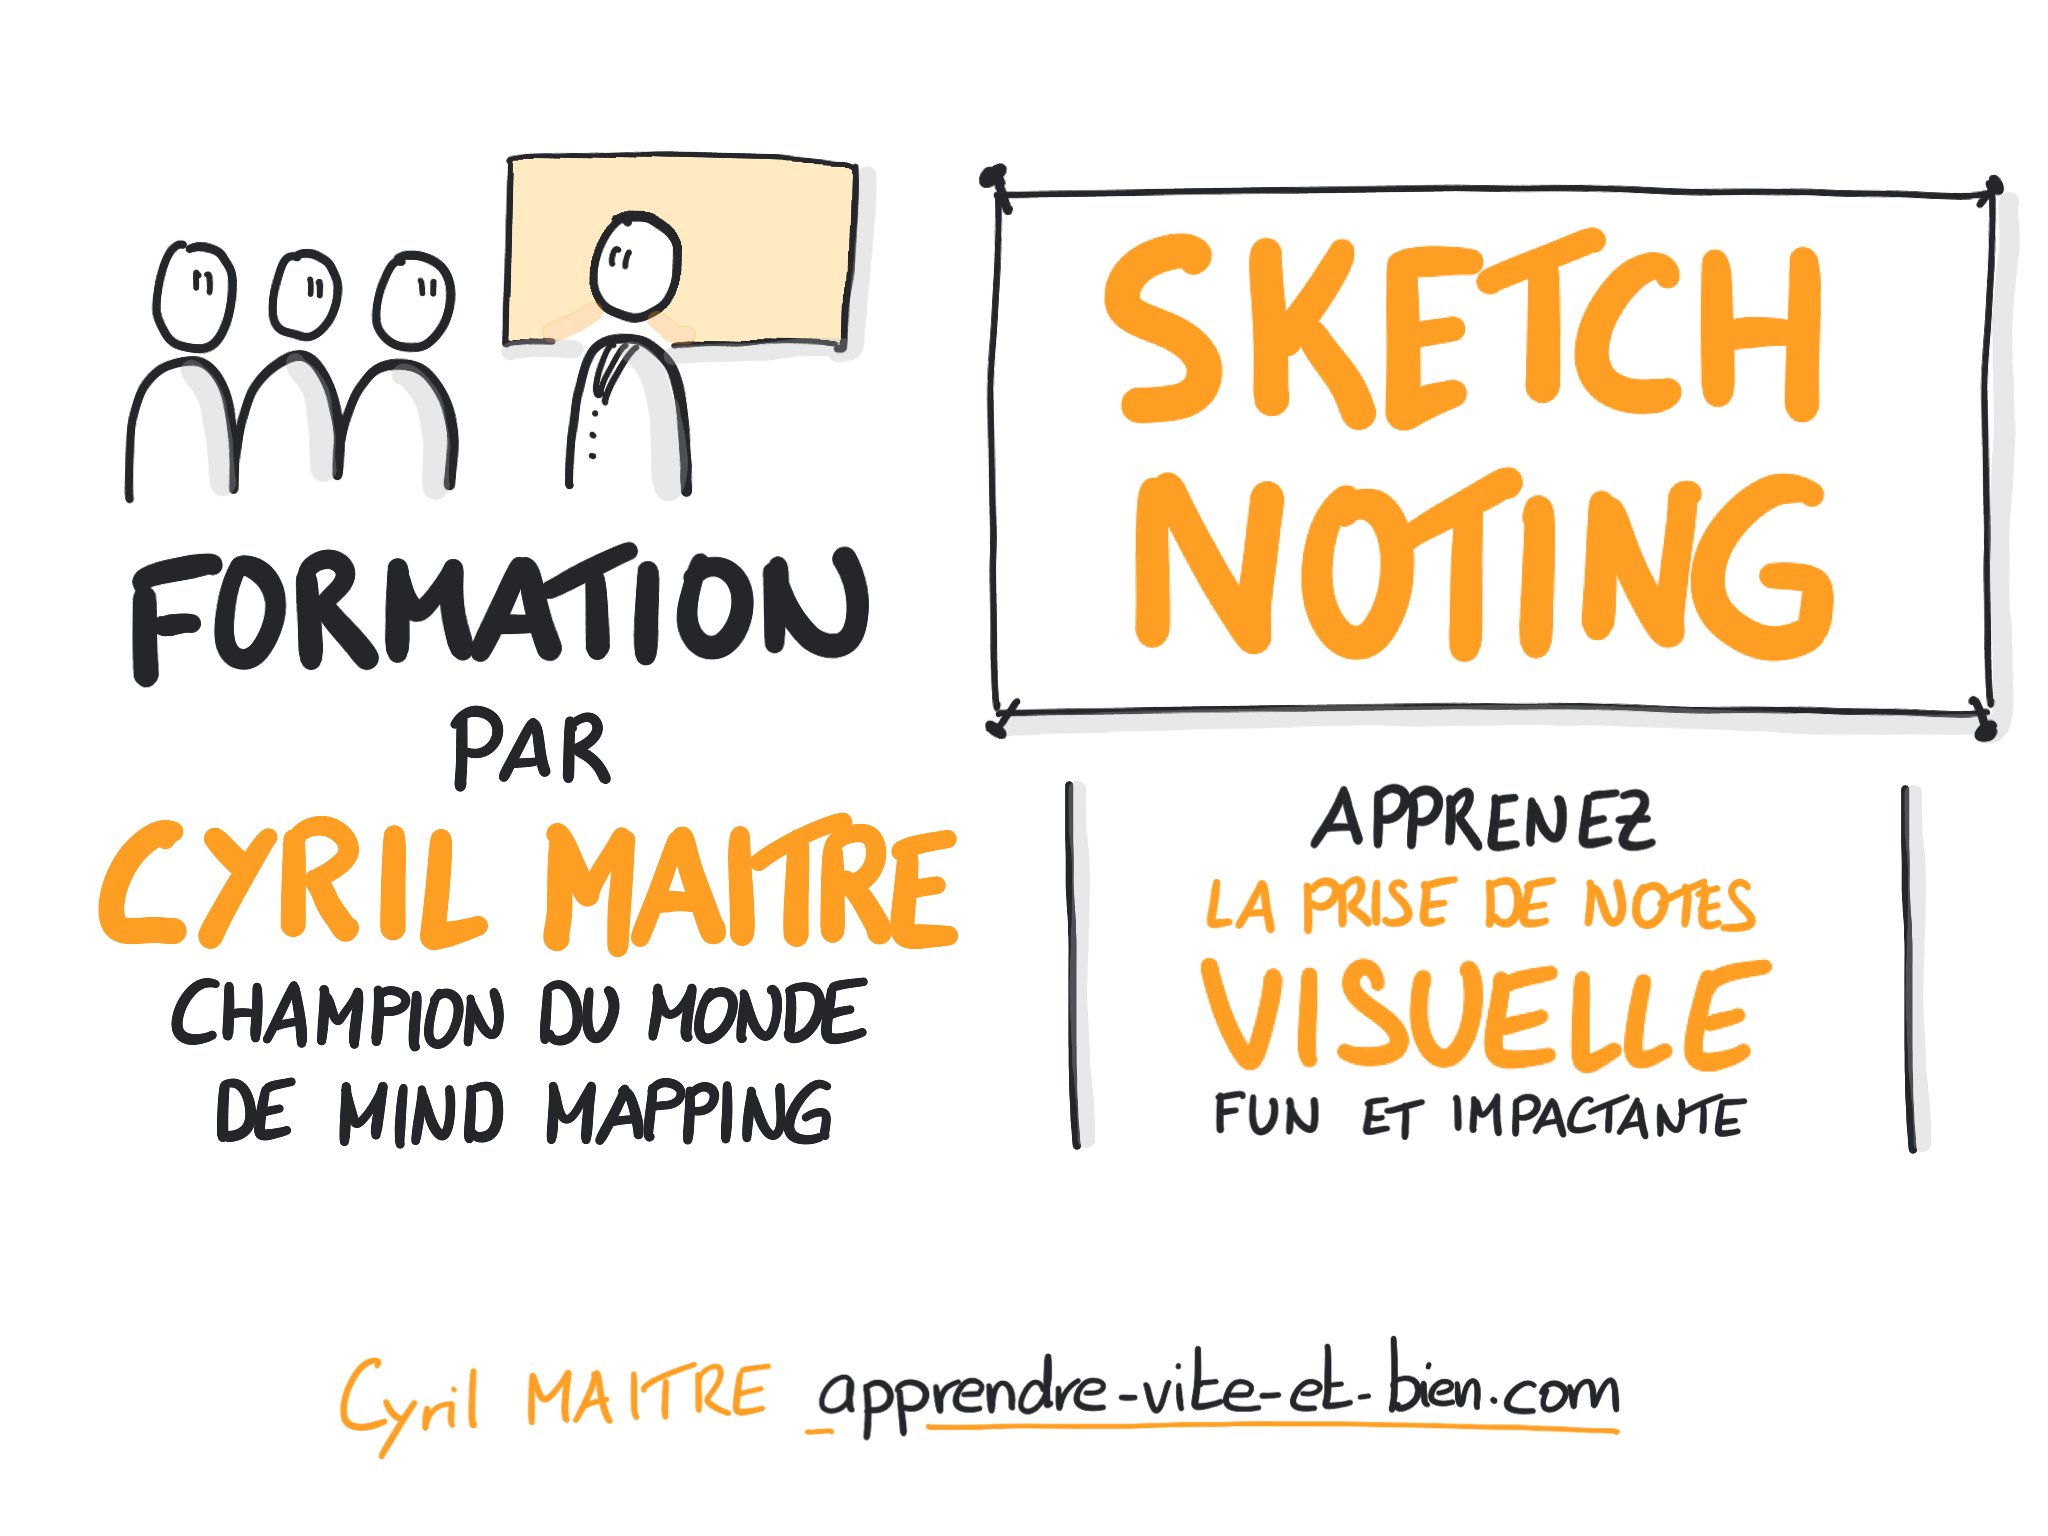 Formation praticien SKETCHNOTING